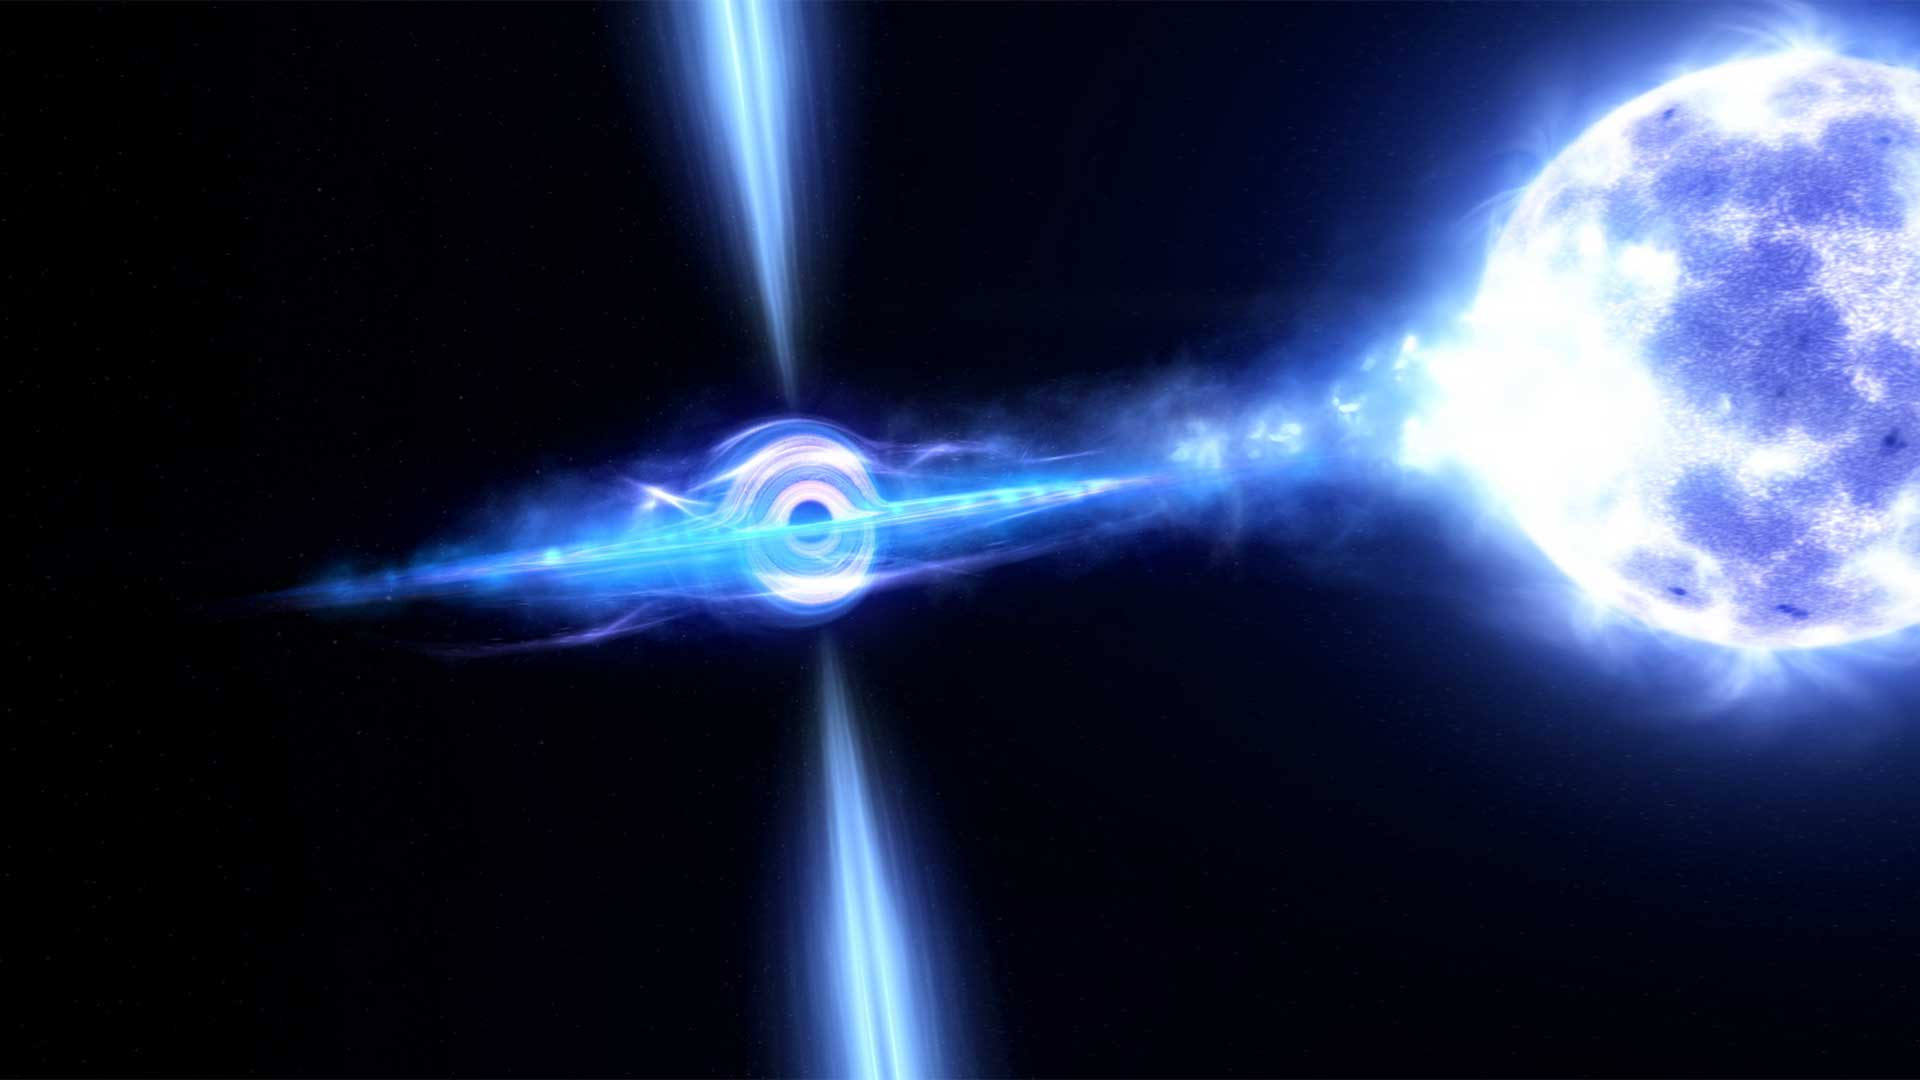 nova_black_hole_cygnus-x_hero